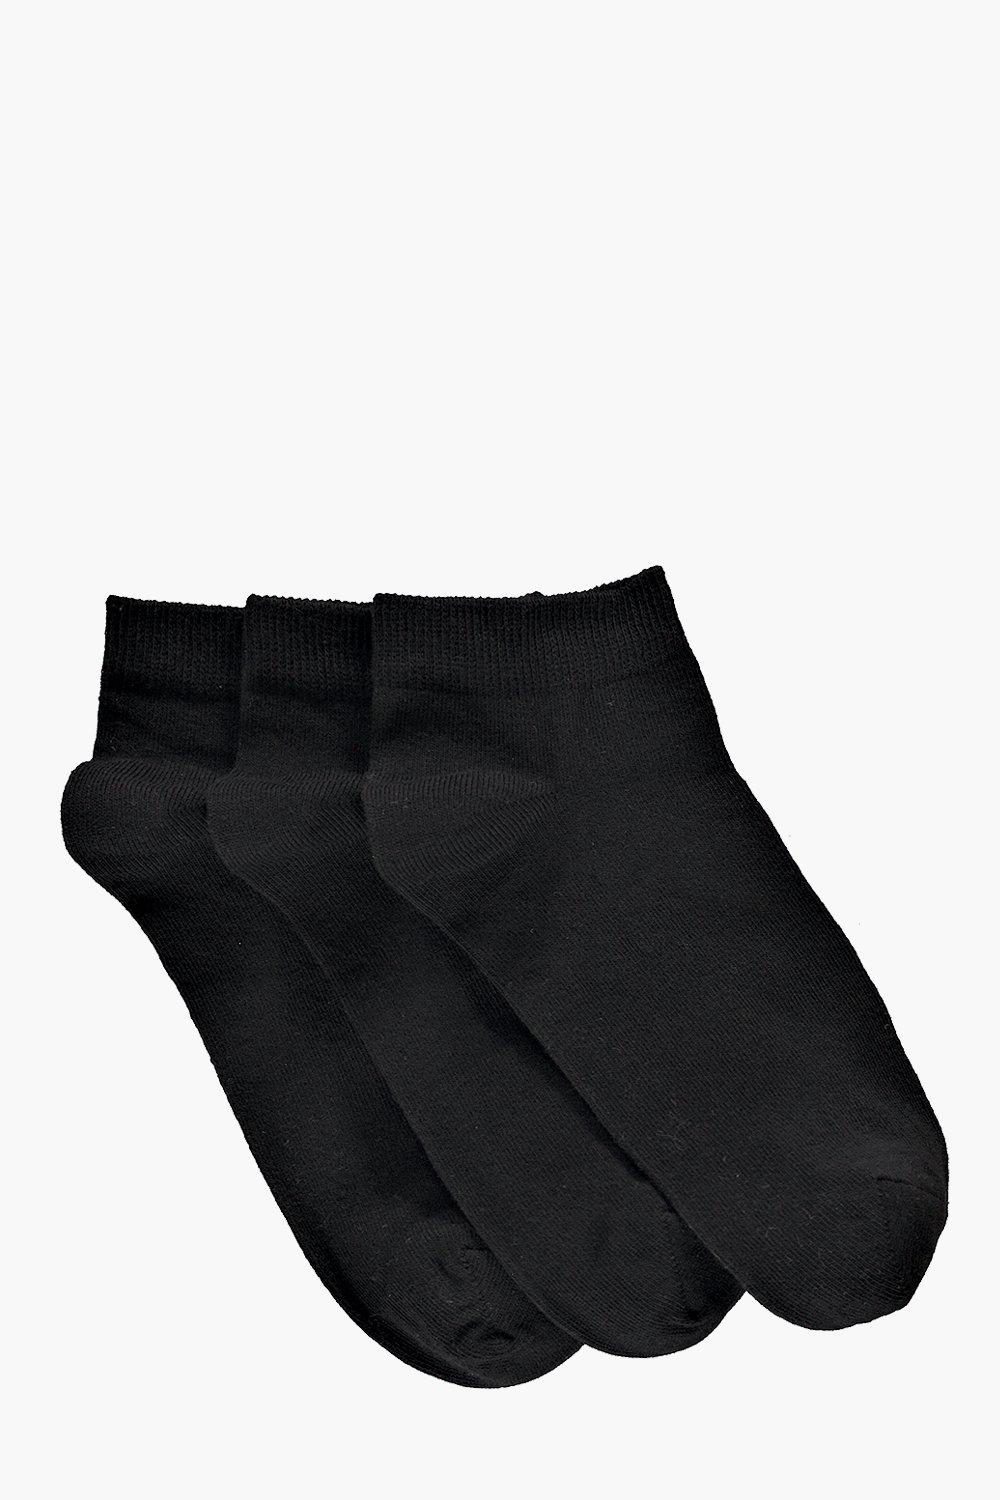 3 Pack Plain Black Trainer Socks